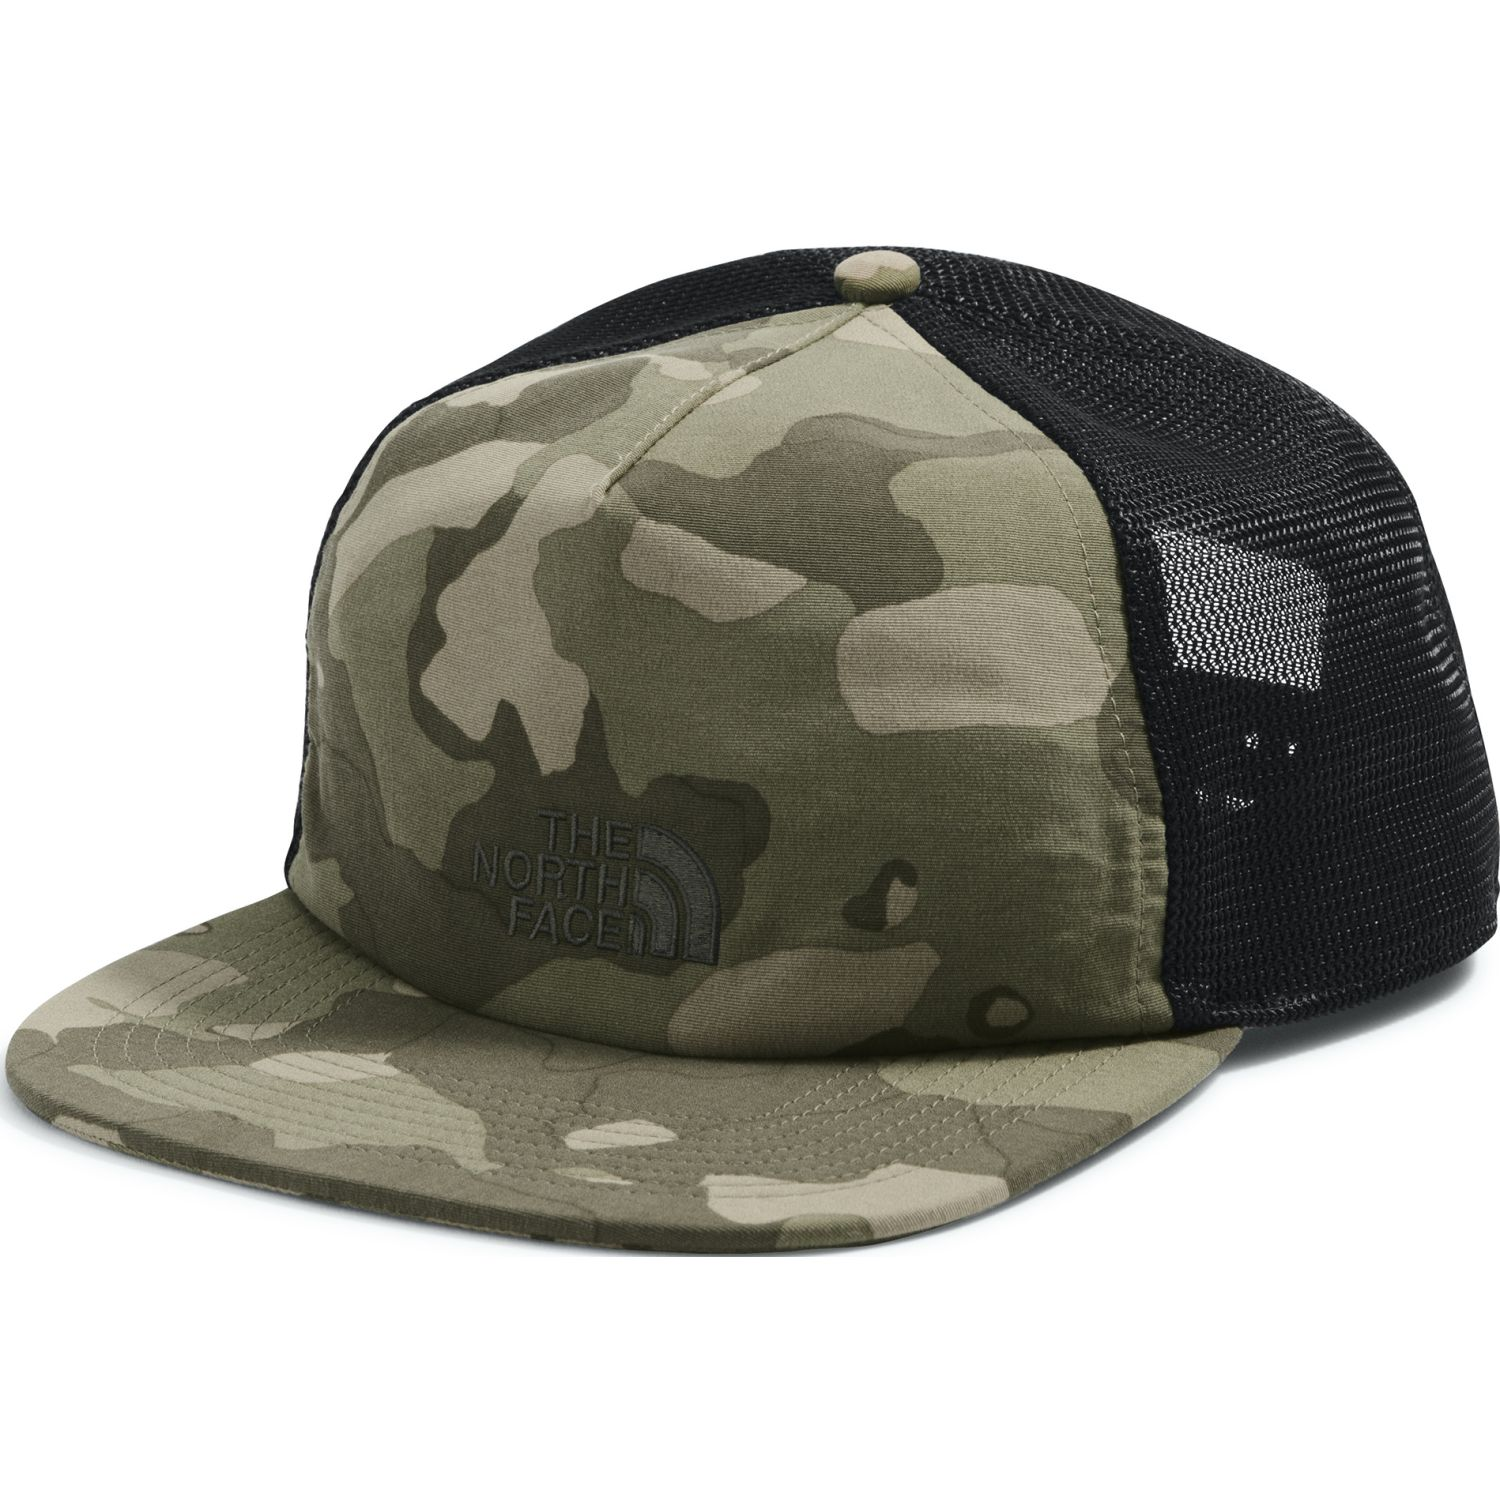 The North Face Class V Trucker Camuflado Gorras de béisbol